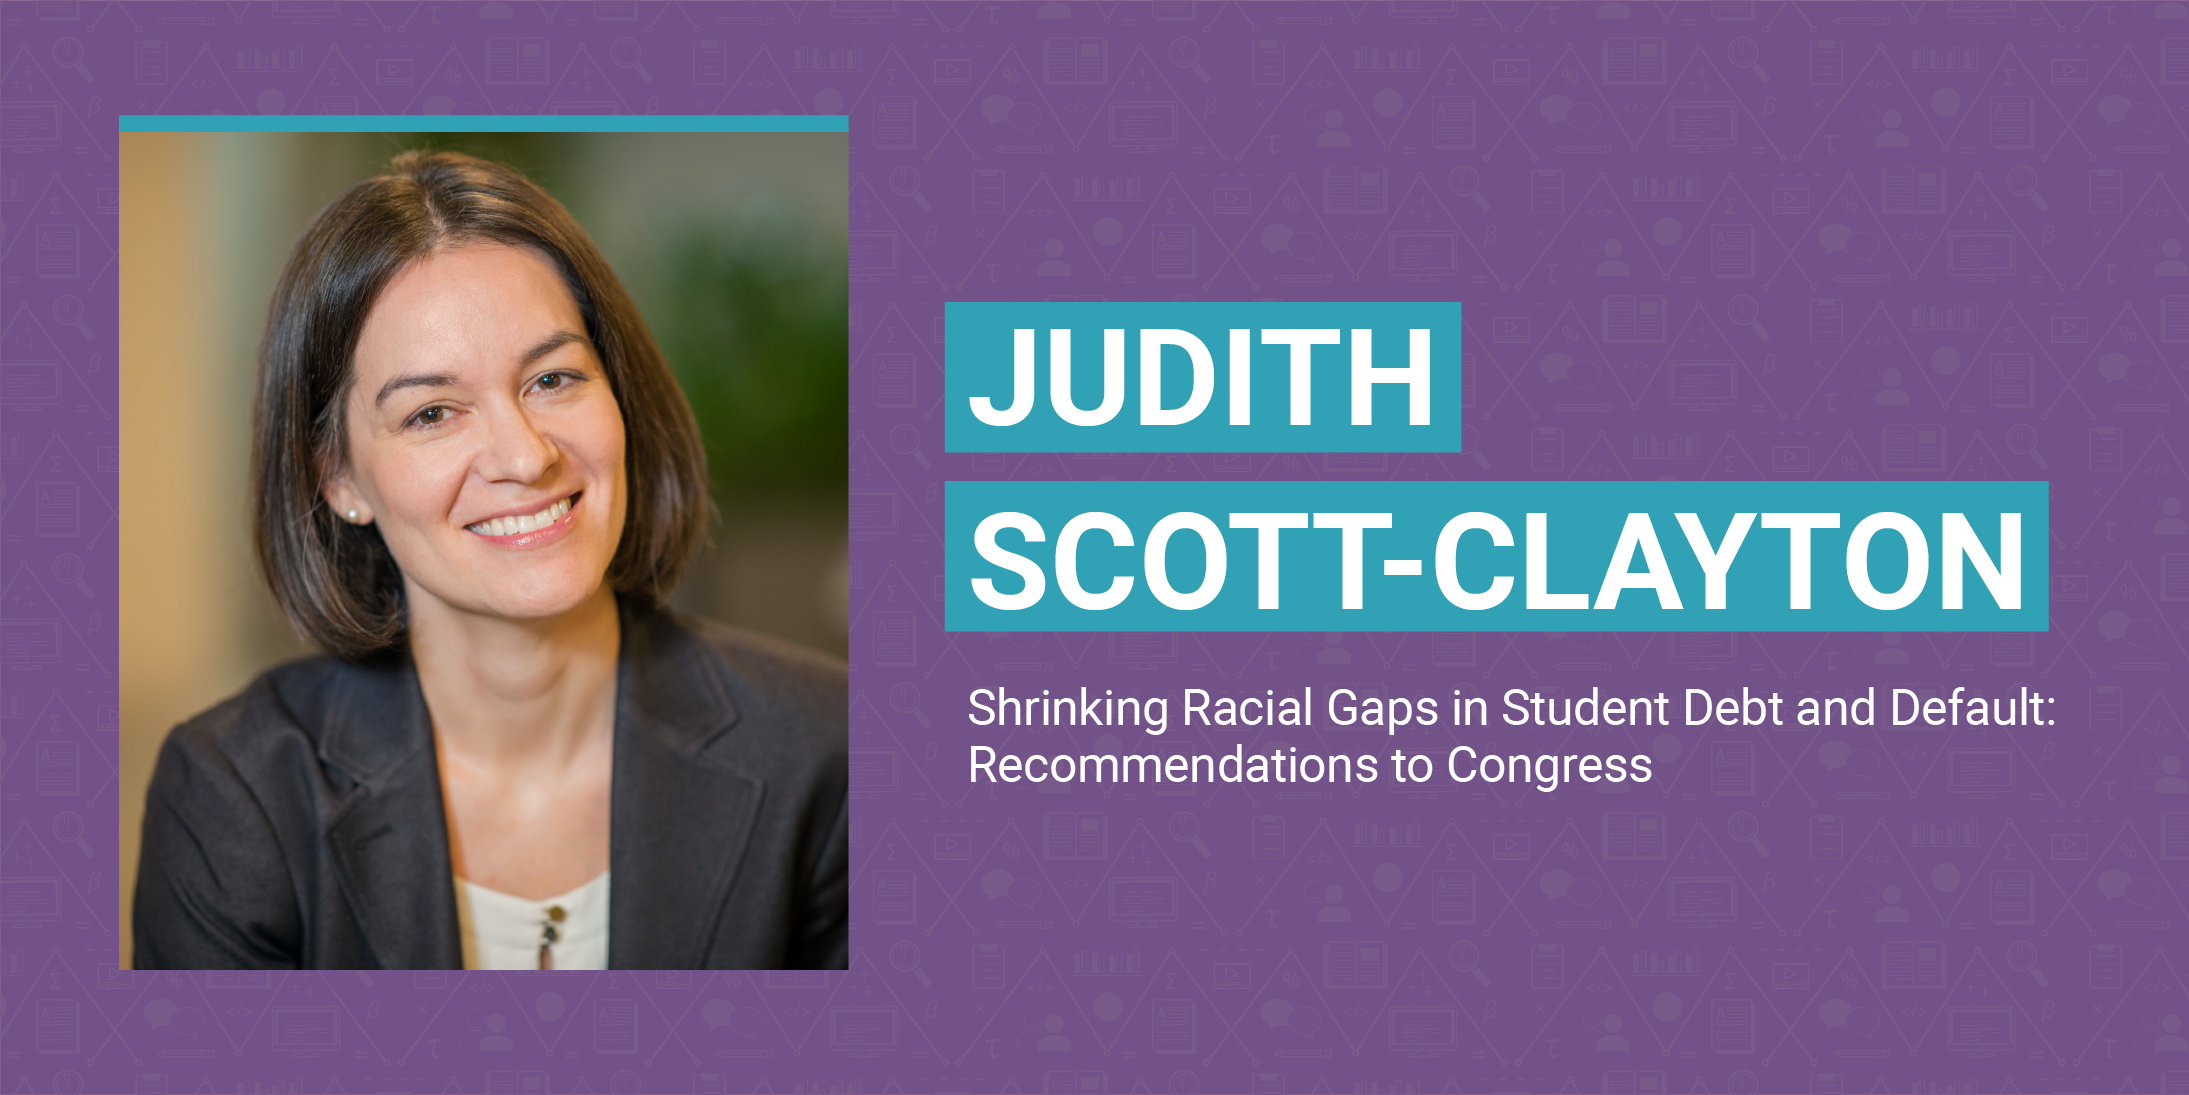 Judith-Scott-Clayton-Blog-Post-Image2